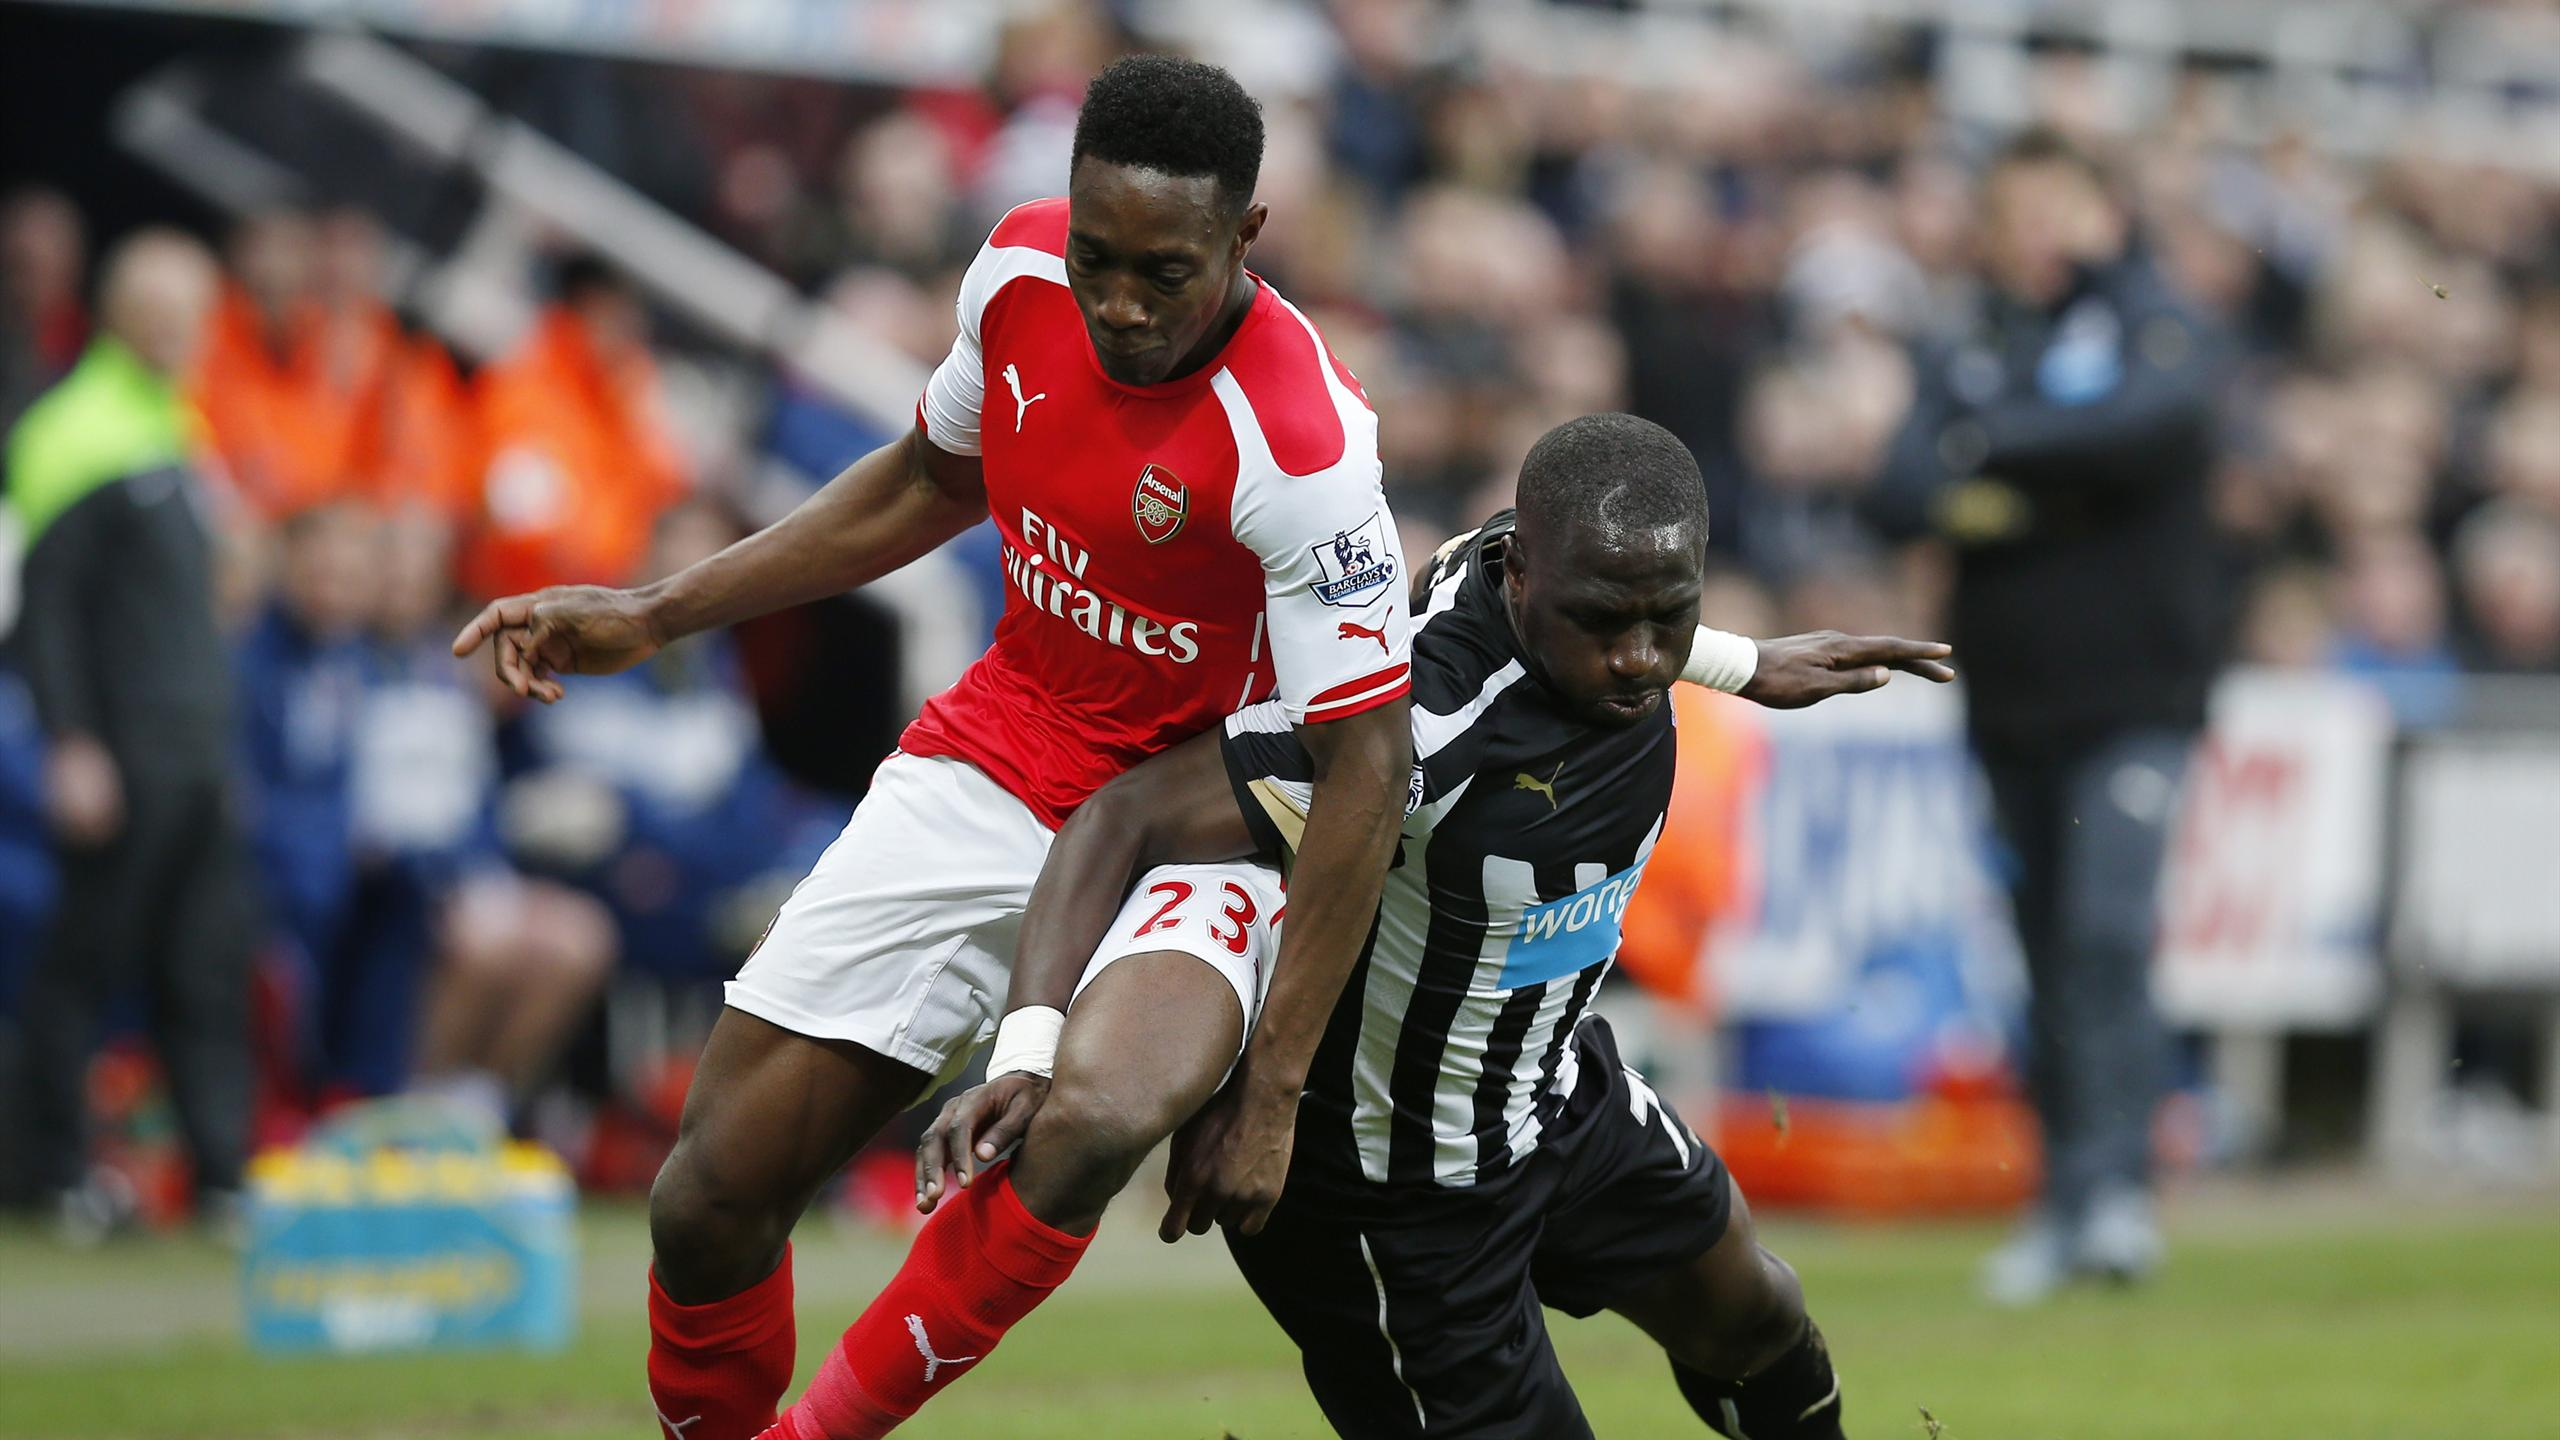 Arsenal's Danny Welbeck in action with Newcastle's Moussa Sissoko